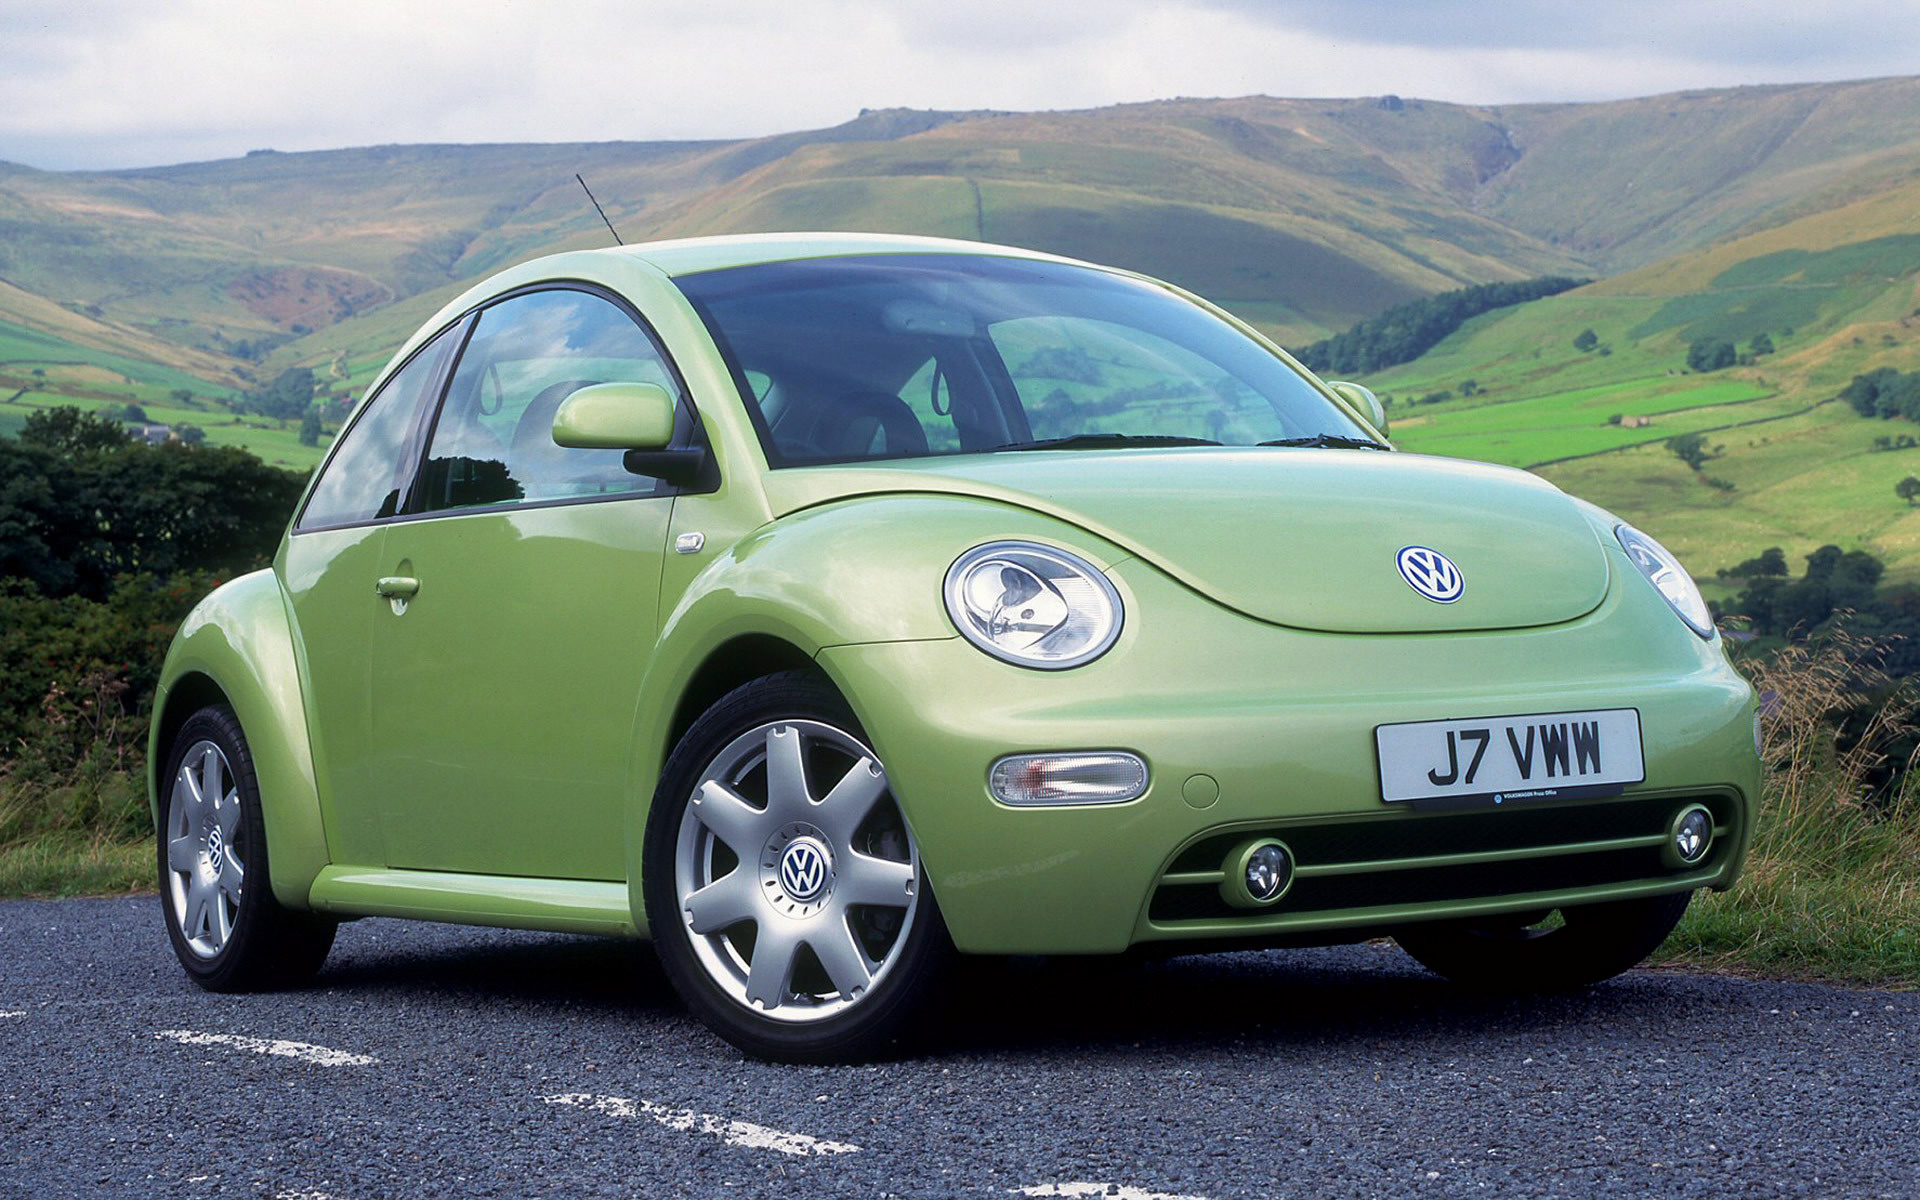 volkswagen new beetle 1998 uk wallpapers and hd images. Black Bedroom Furniture Sets. Home Design Ideas